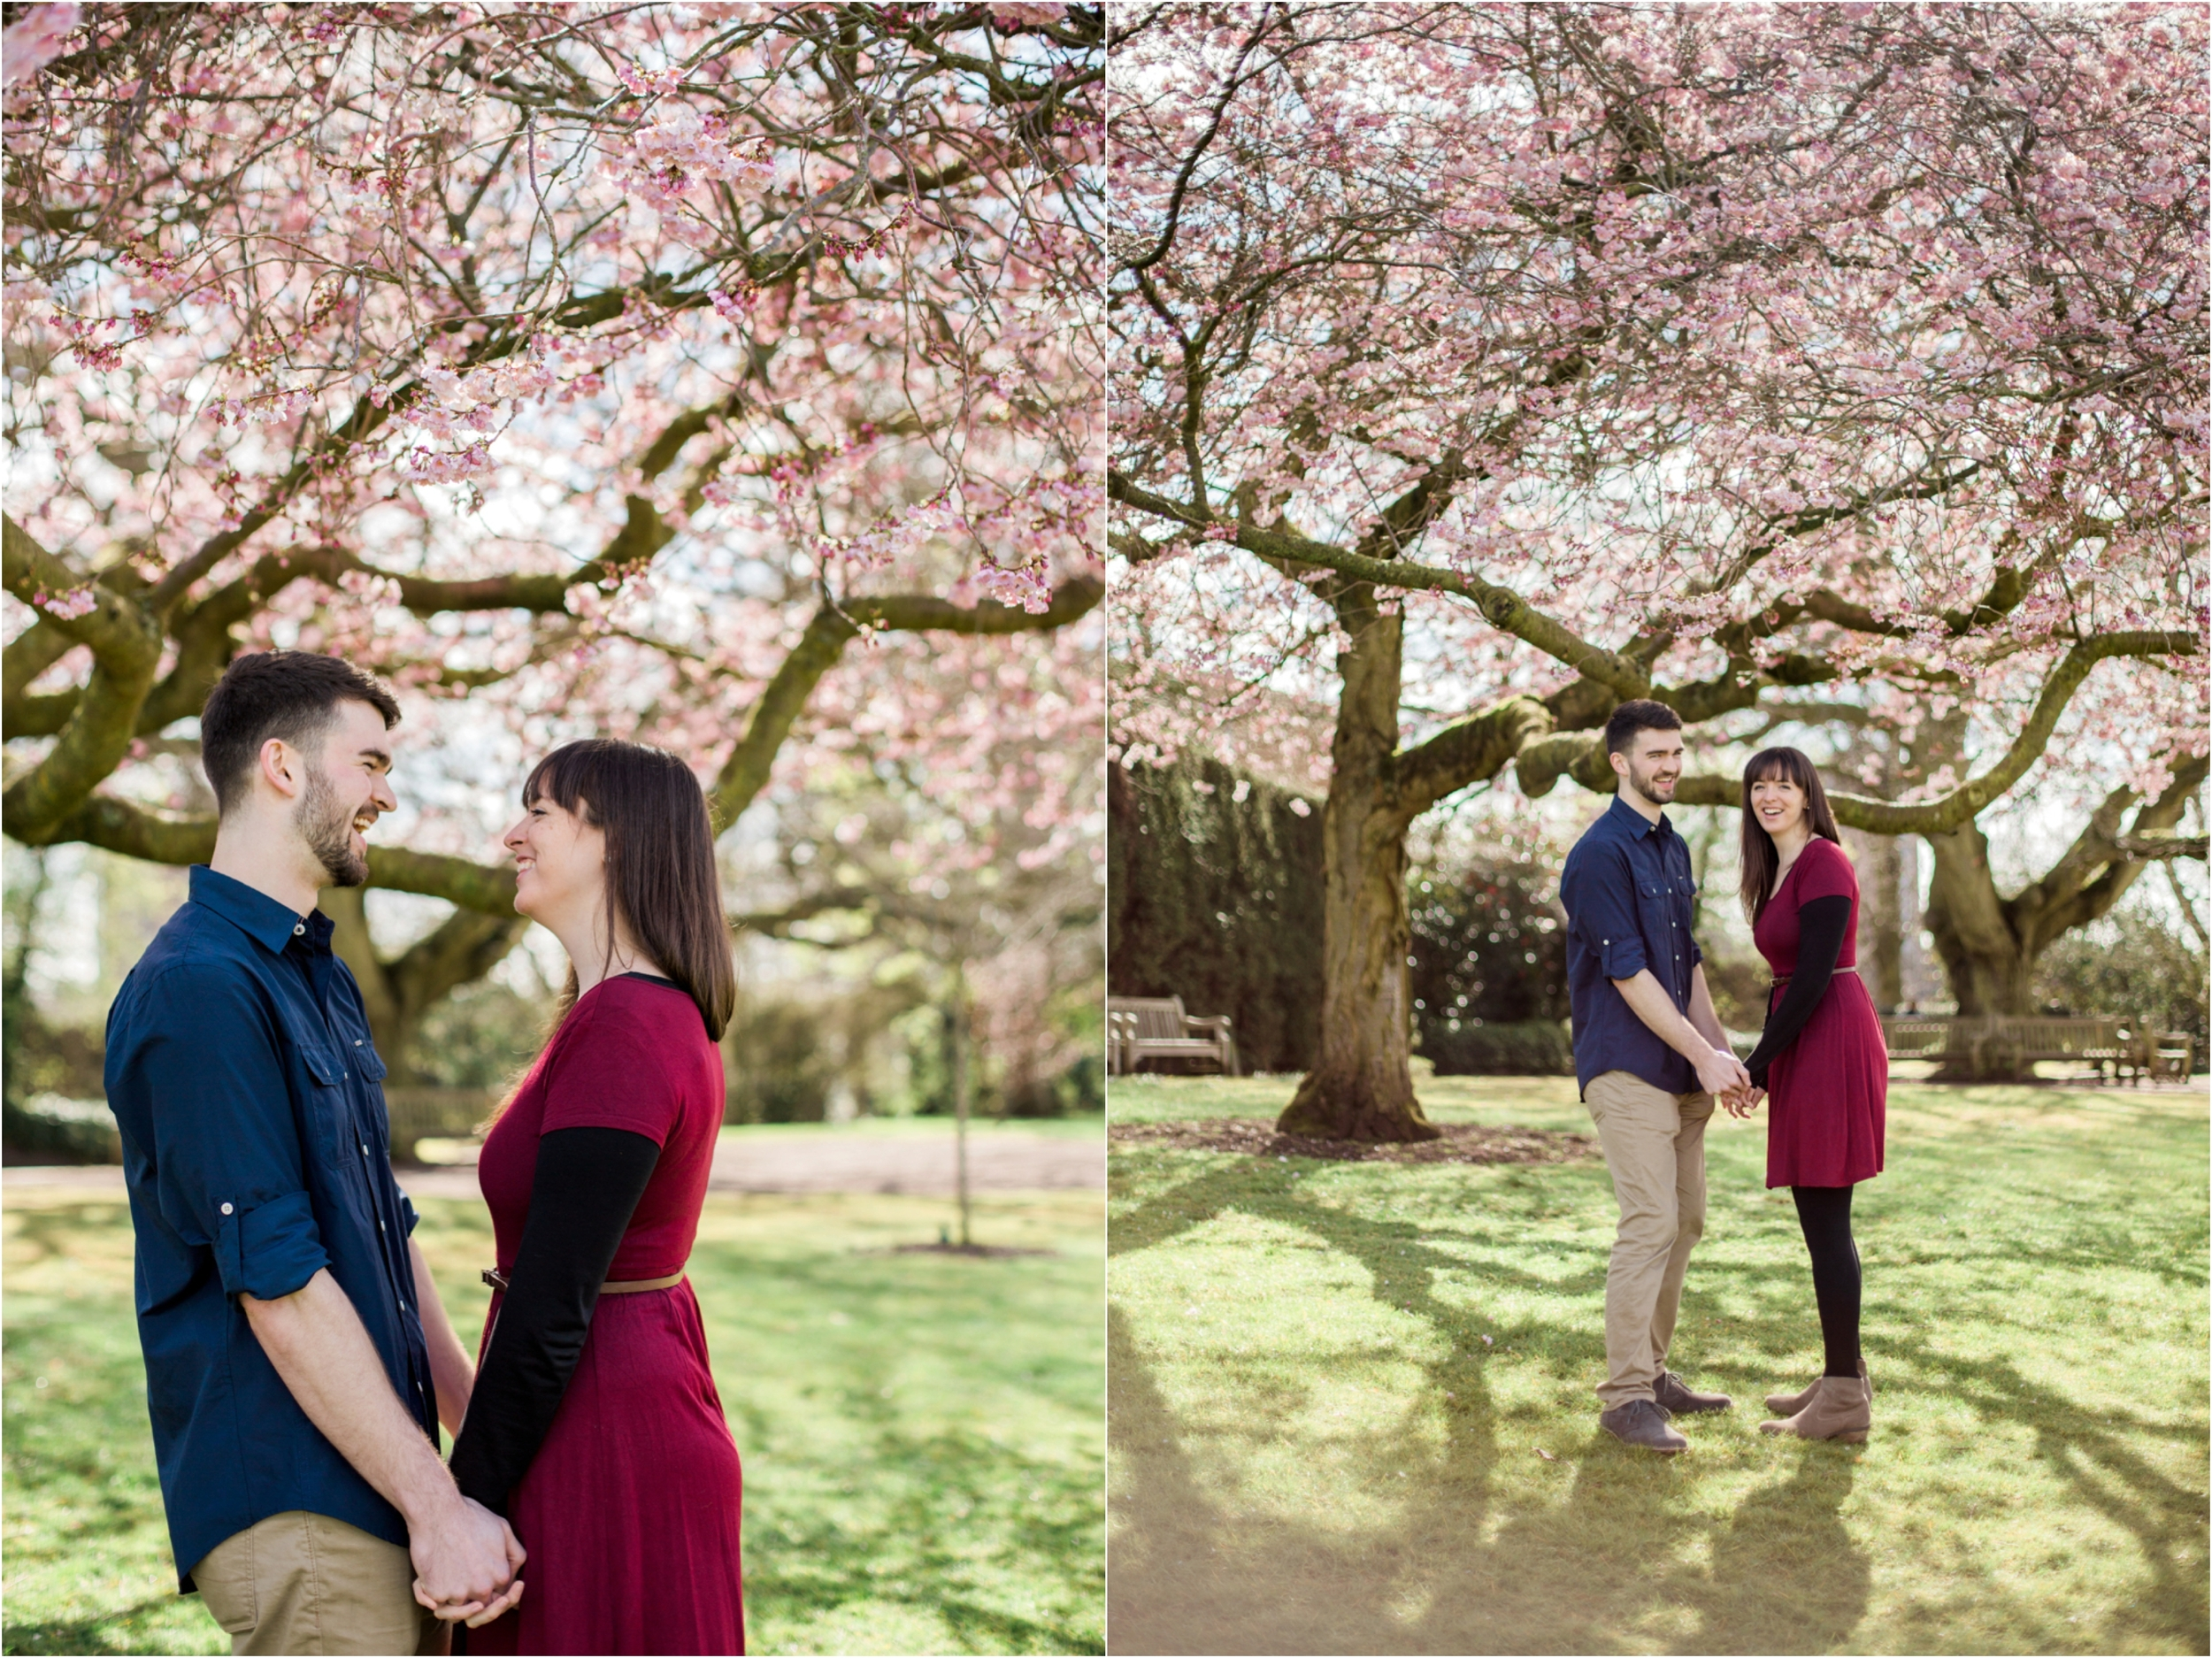 Sophie Evans Photography, Alice & Nathanael Botanical Gardens Engagement Shoot. Warwickshire Wedding Photographer (7).jpg